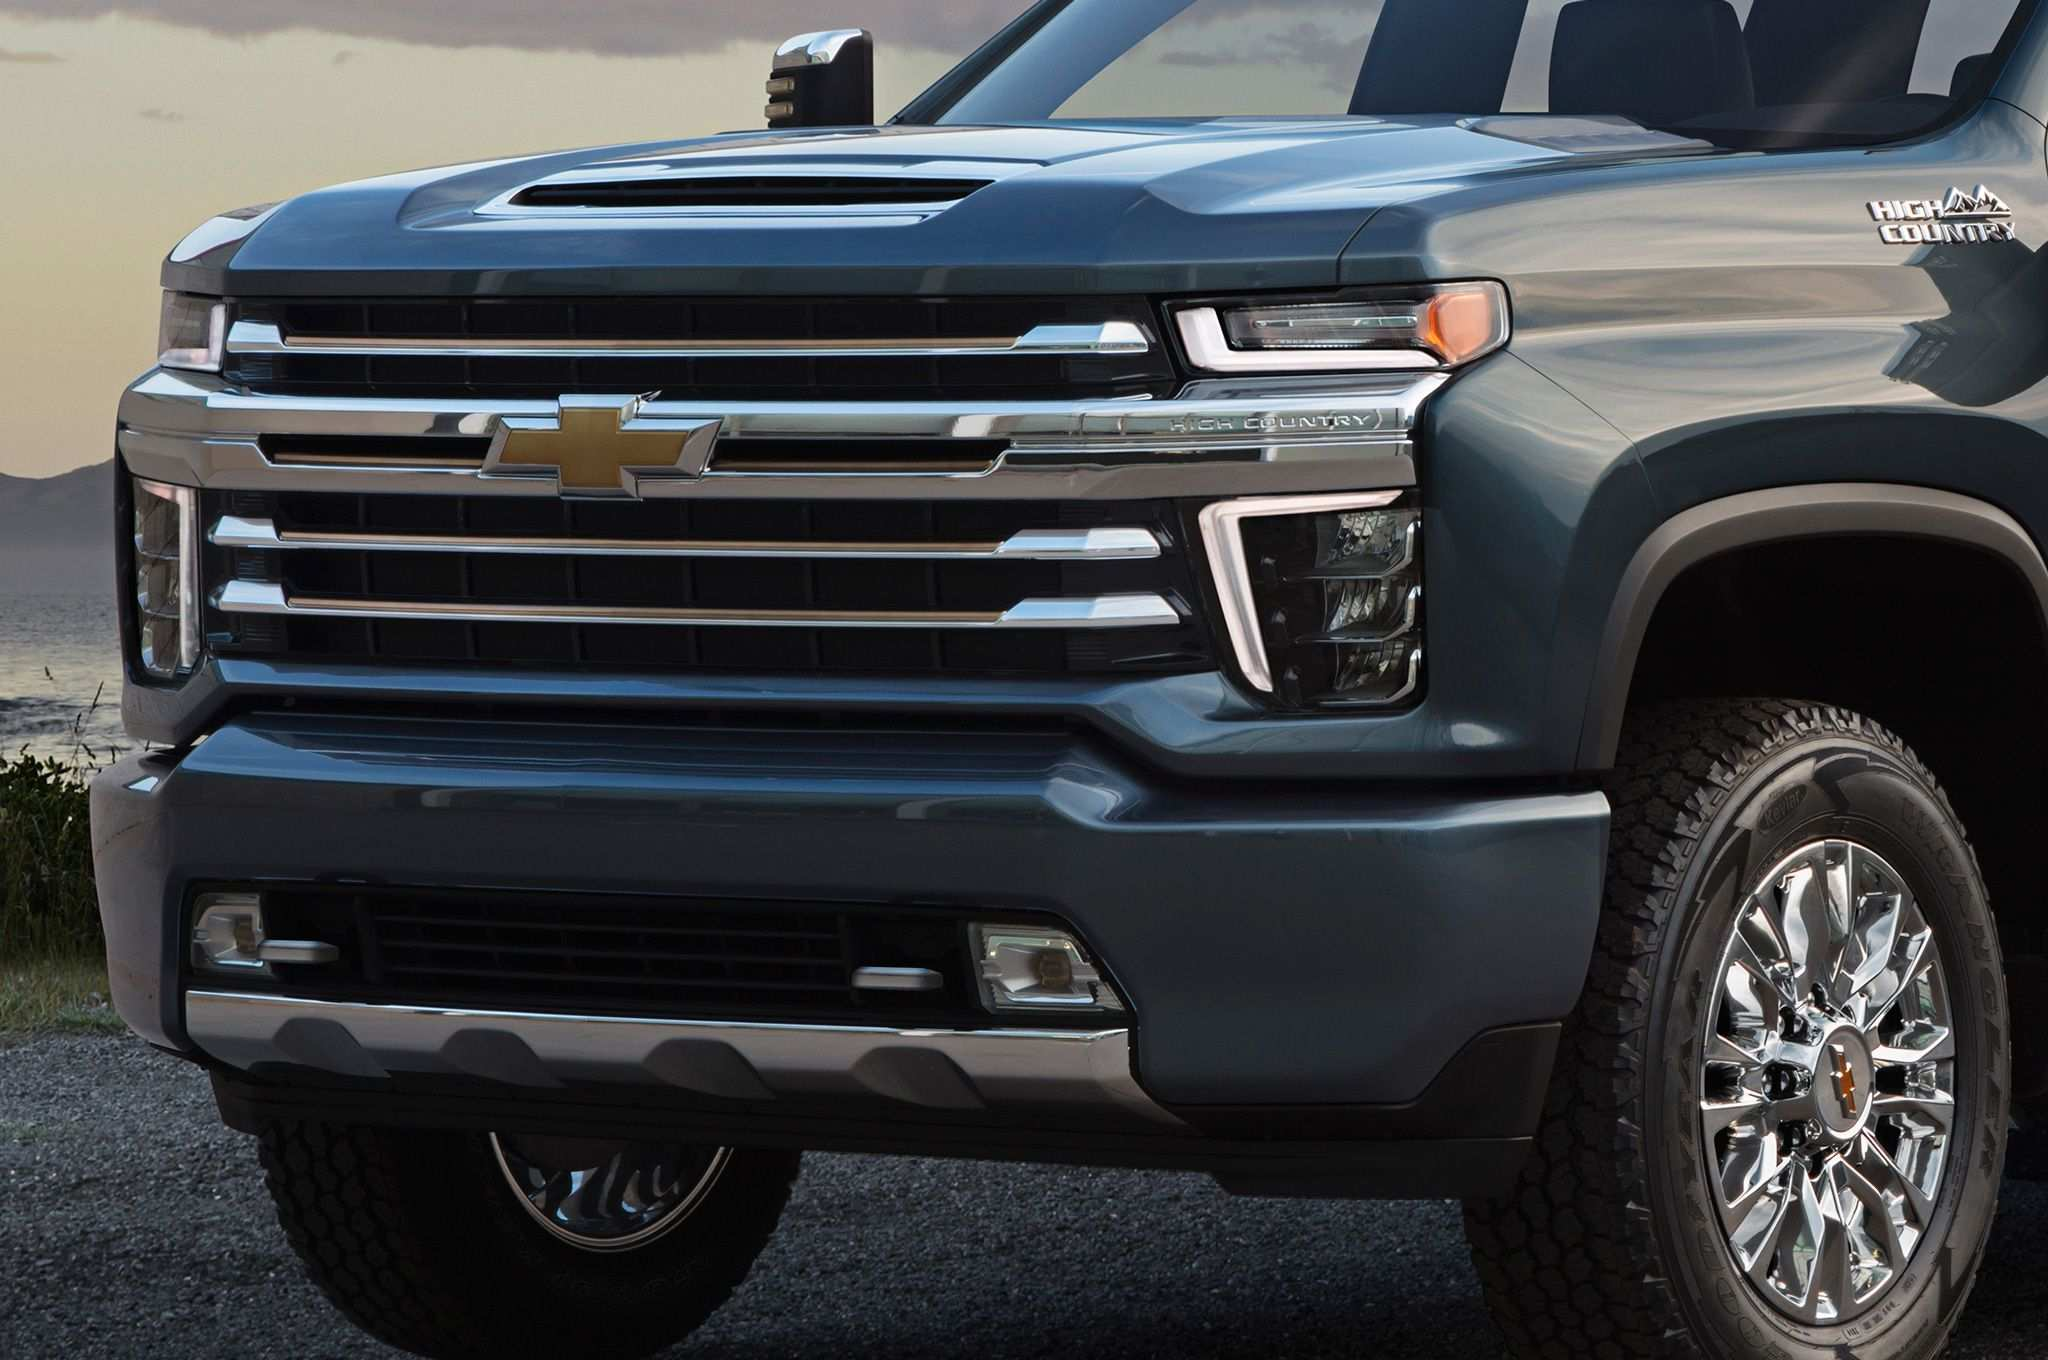 98 All New 2020 Chevy Duramax Images with 2020 Chevy Duramax